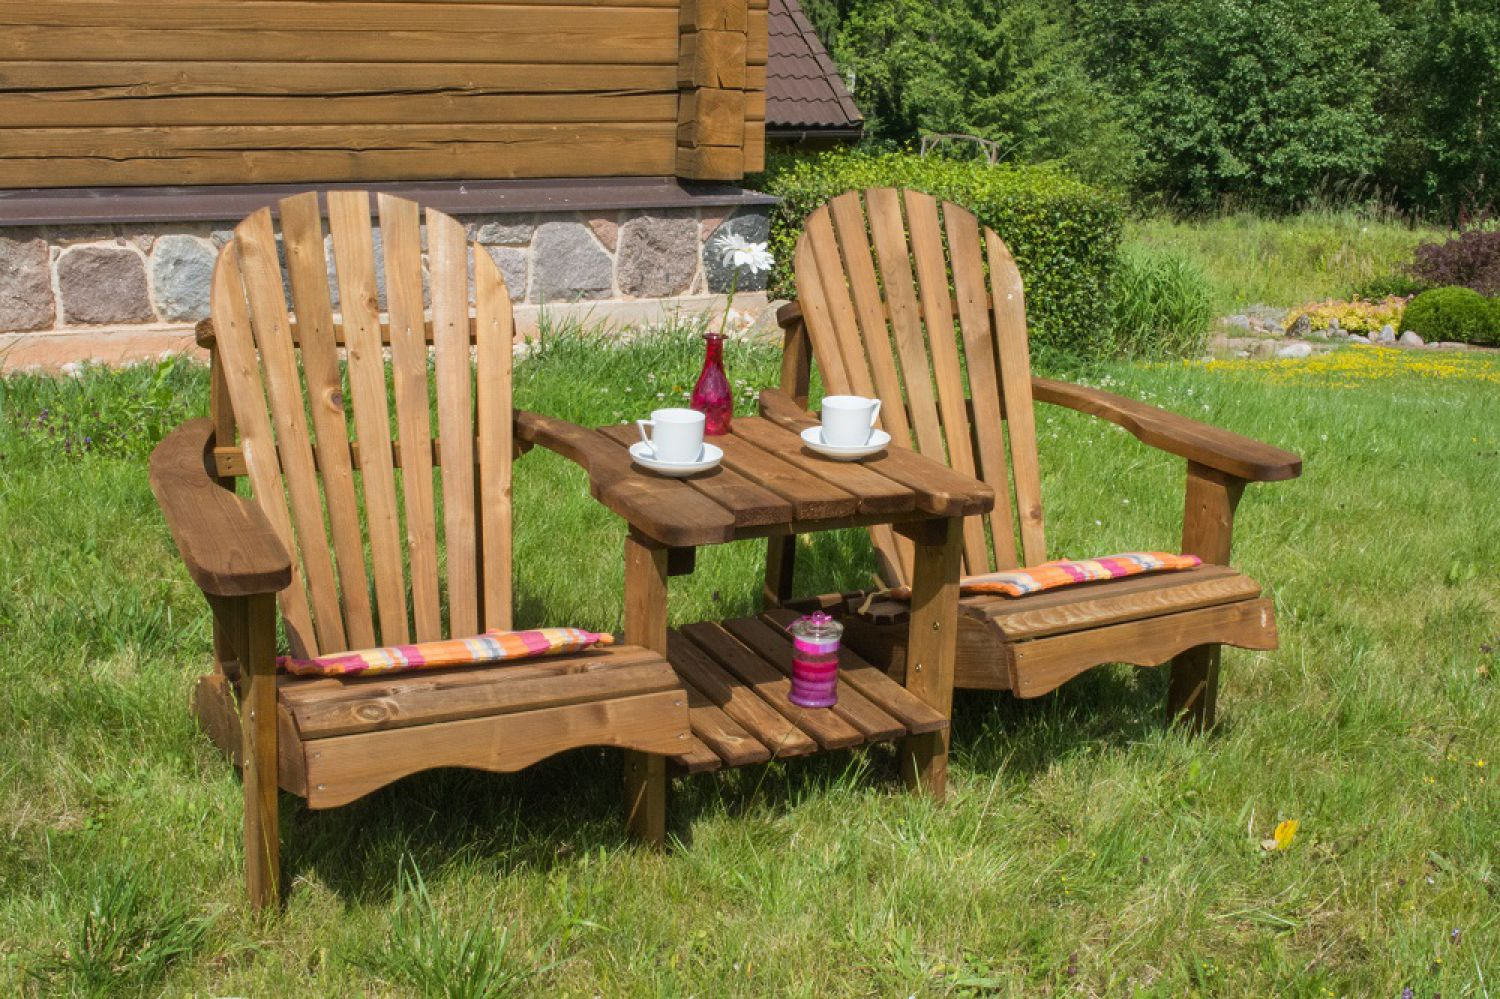 holz doppel liegestuhl garnitur gartenliege gartenm bel allround relax 2 braun ebay. Black Bedroom Furniture Sets. Home Design Ideas